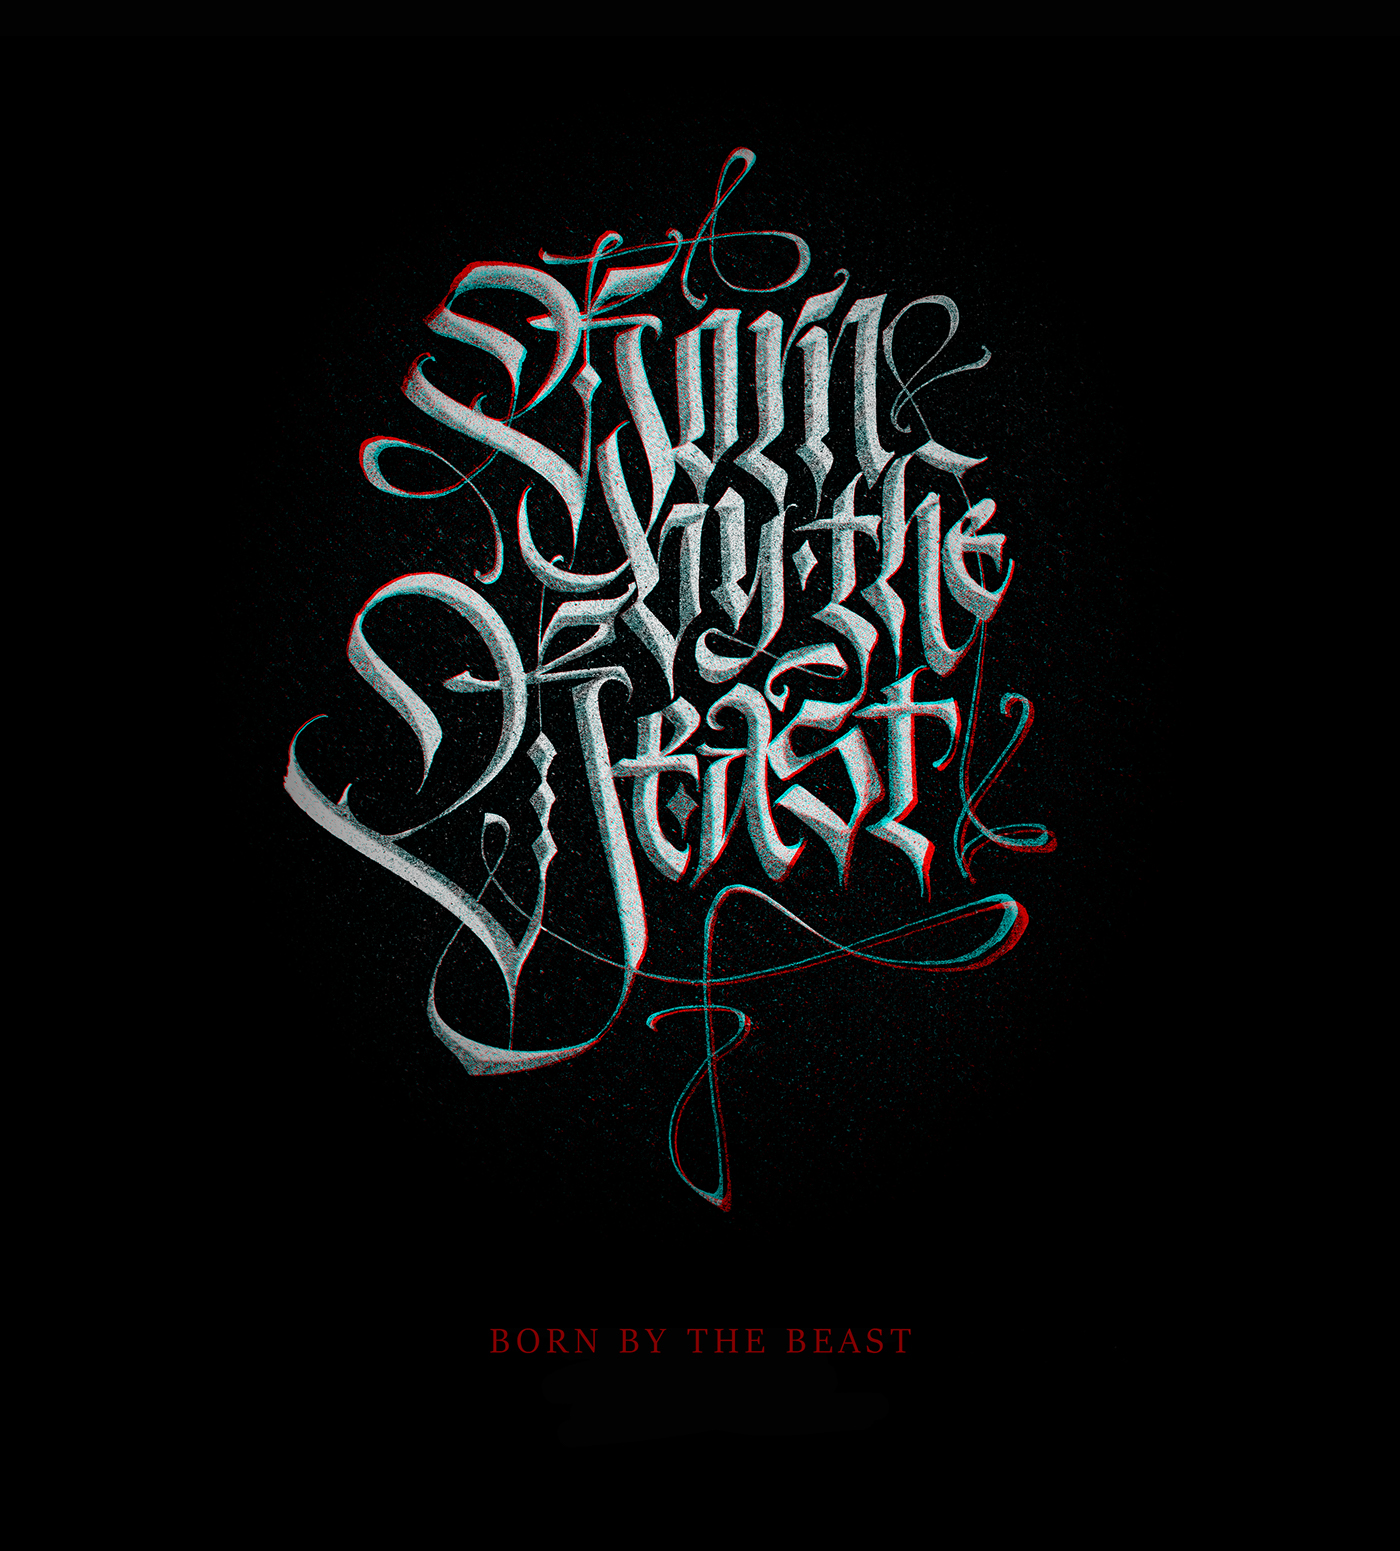 SORCERY LETTERS Modern Gothic Calligraphy Vol3 On Behance